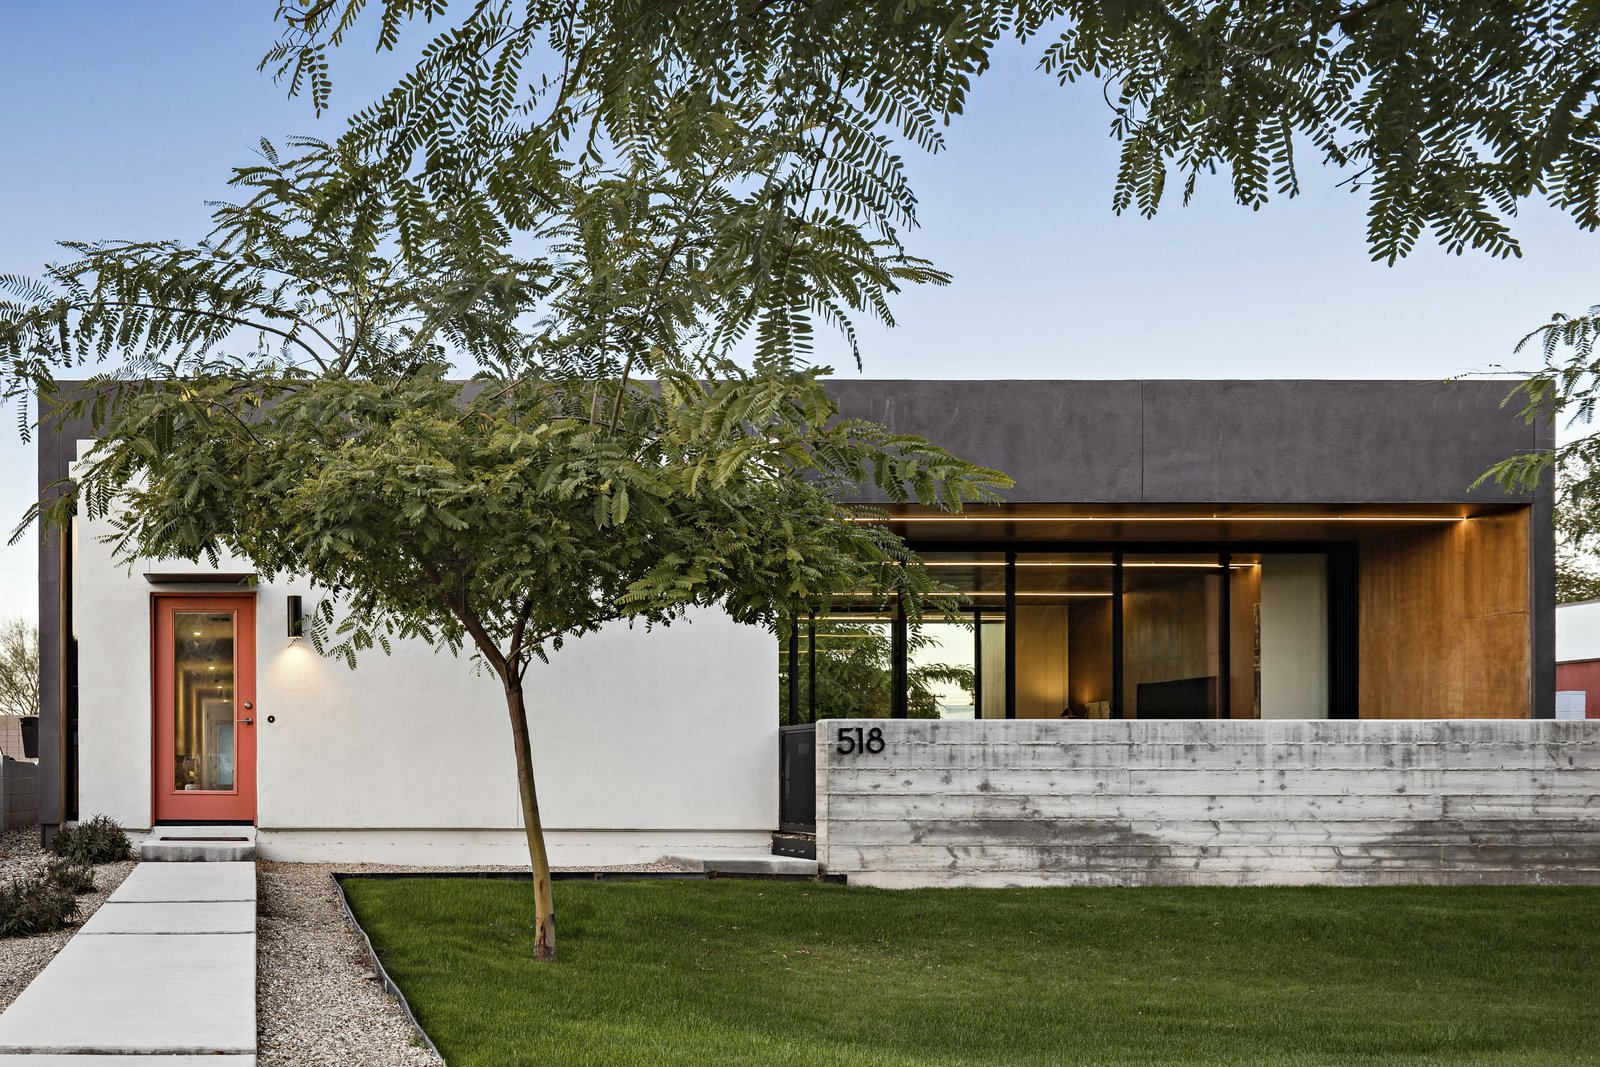 The front elevation is a modern distillation of the historic homes in the neighborhood, featuring the same composition of a protruded front volume with a single opening flanked by a shaded living area